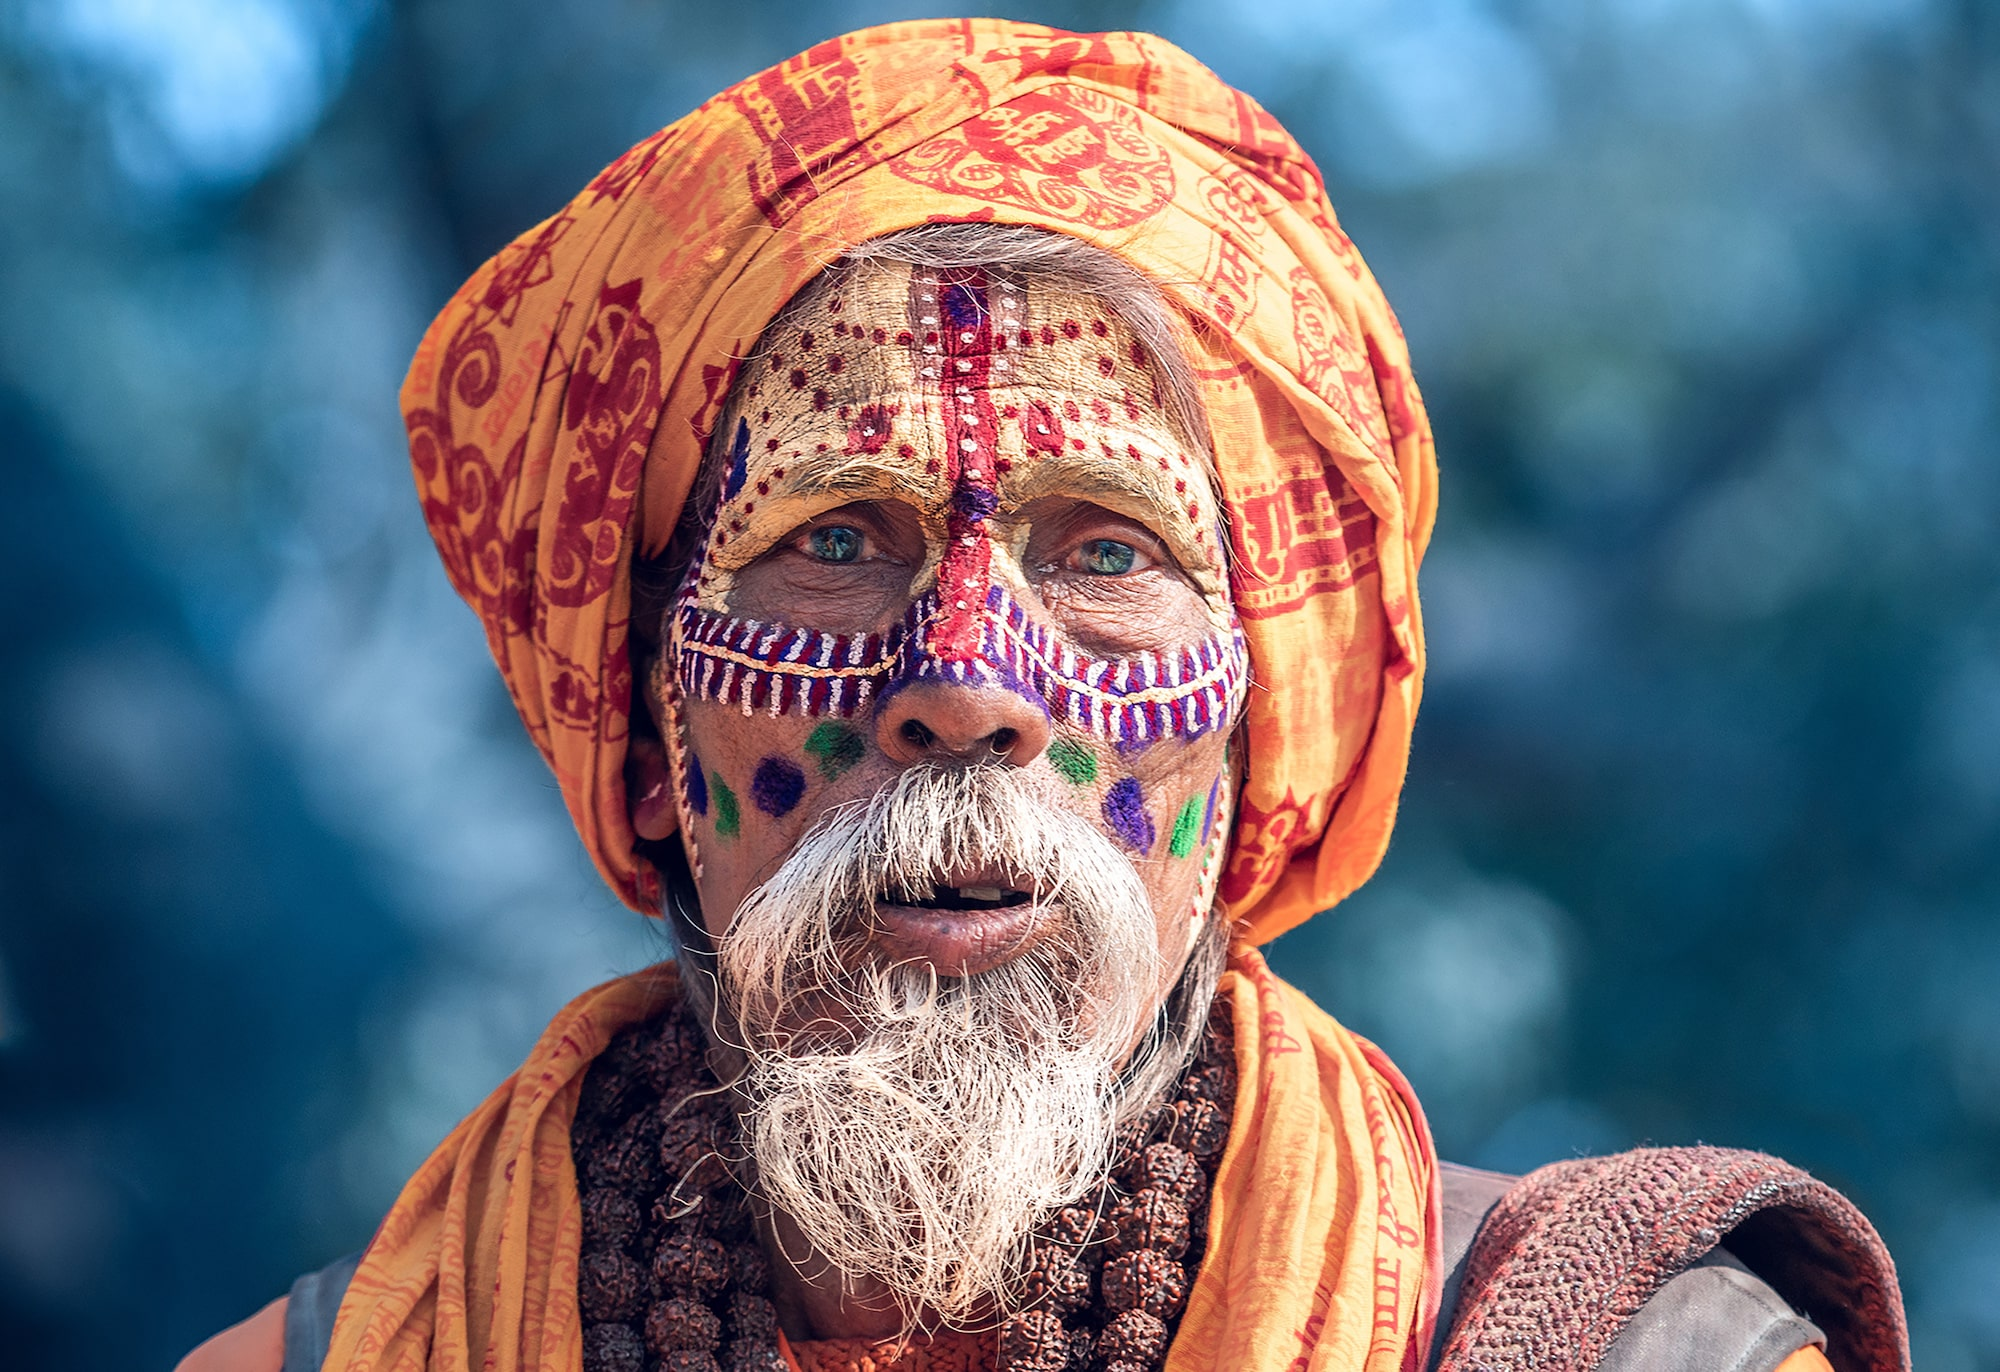 tolis fragoudis sony alpha 7RII orange clad sadhu looks earnestly at the camera